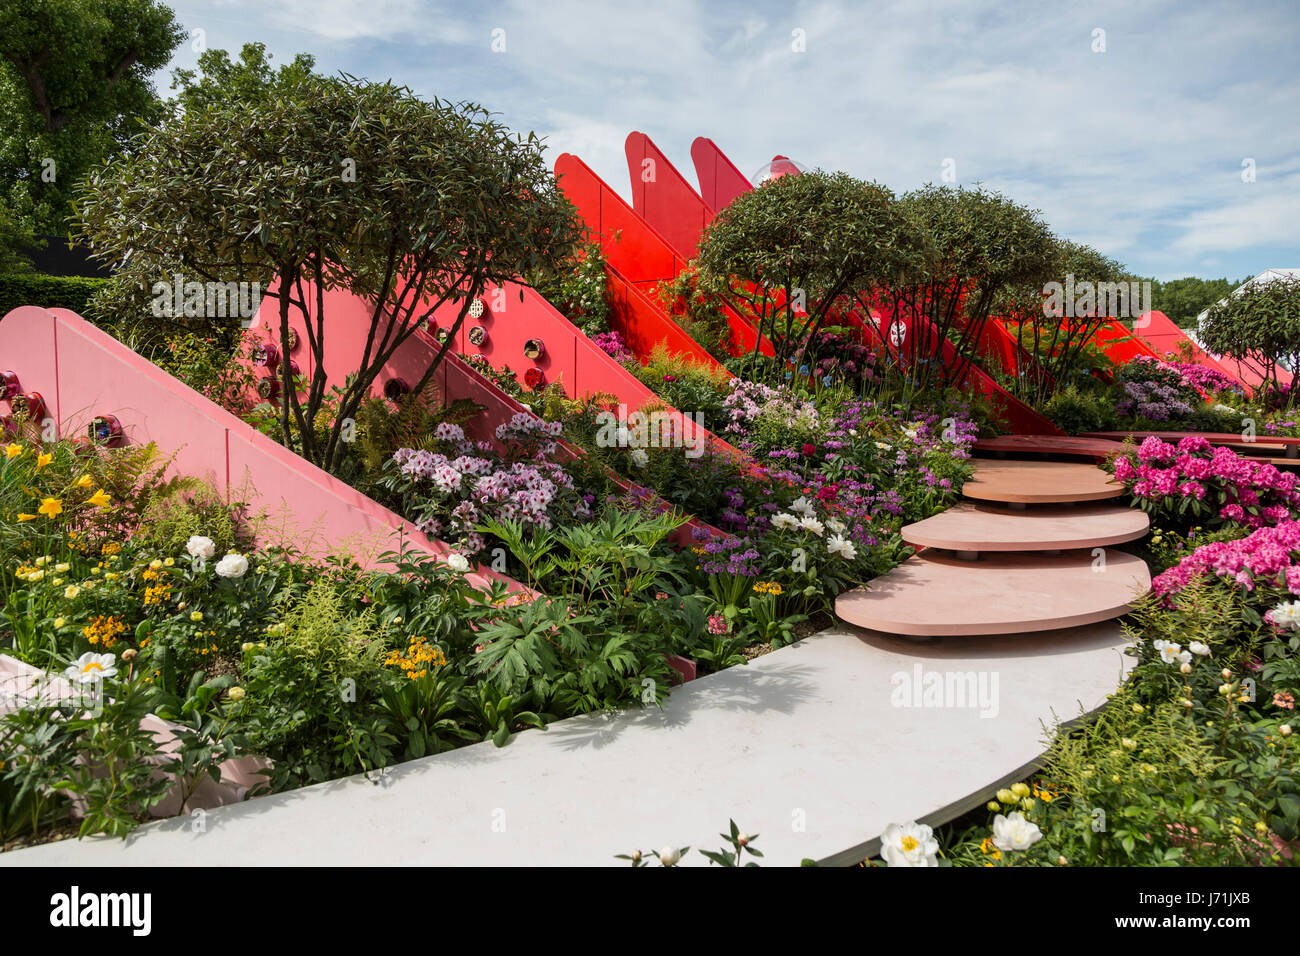 22nd May 2017 The Silk Road Garden